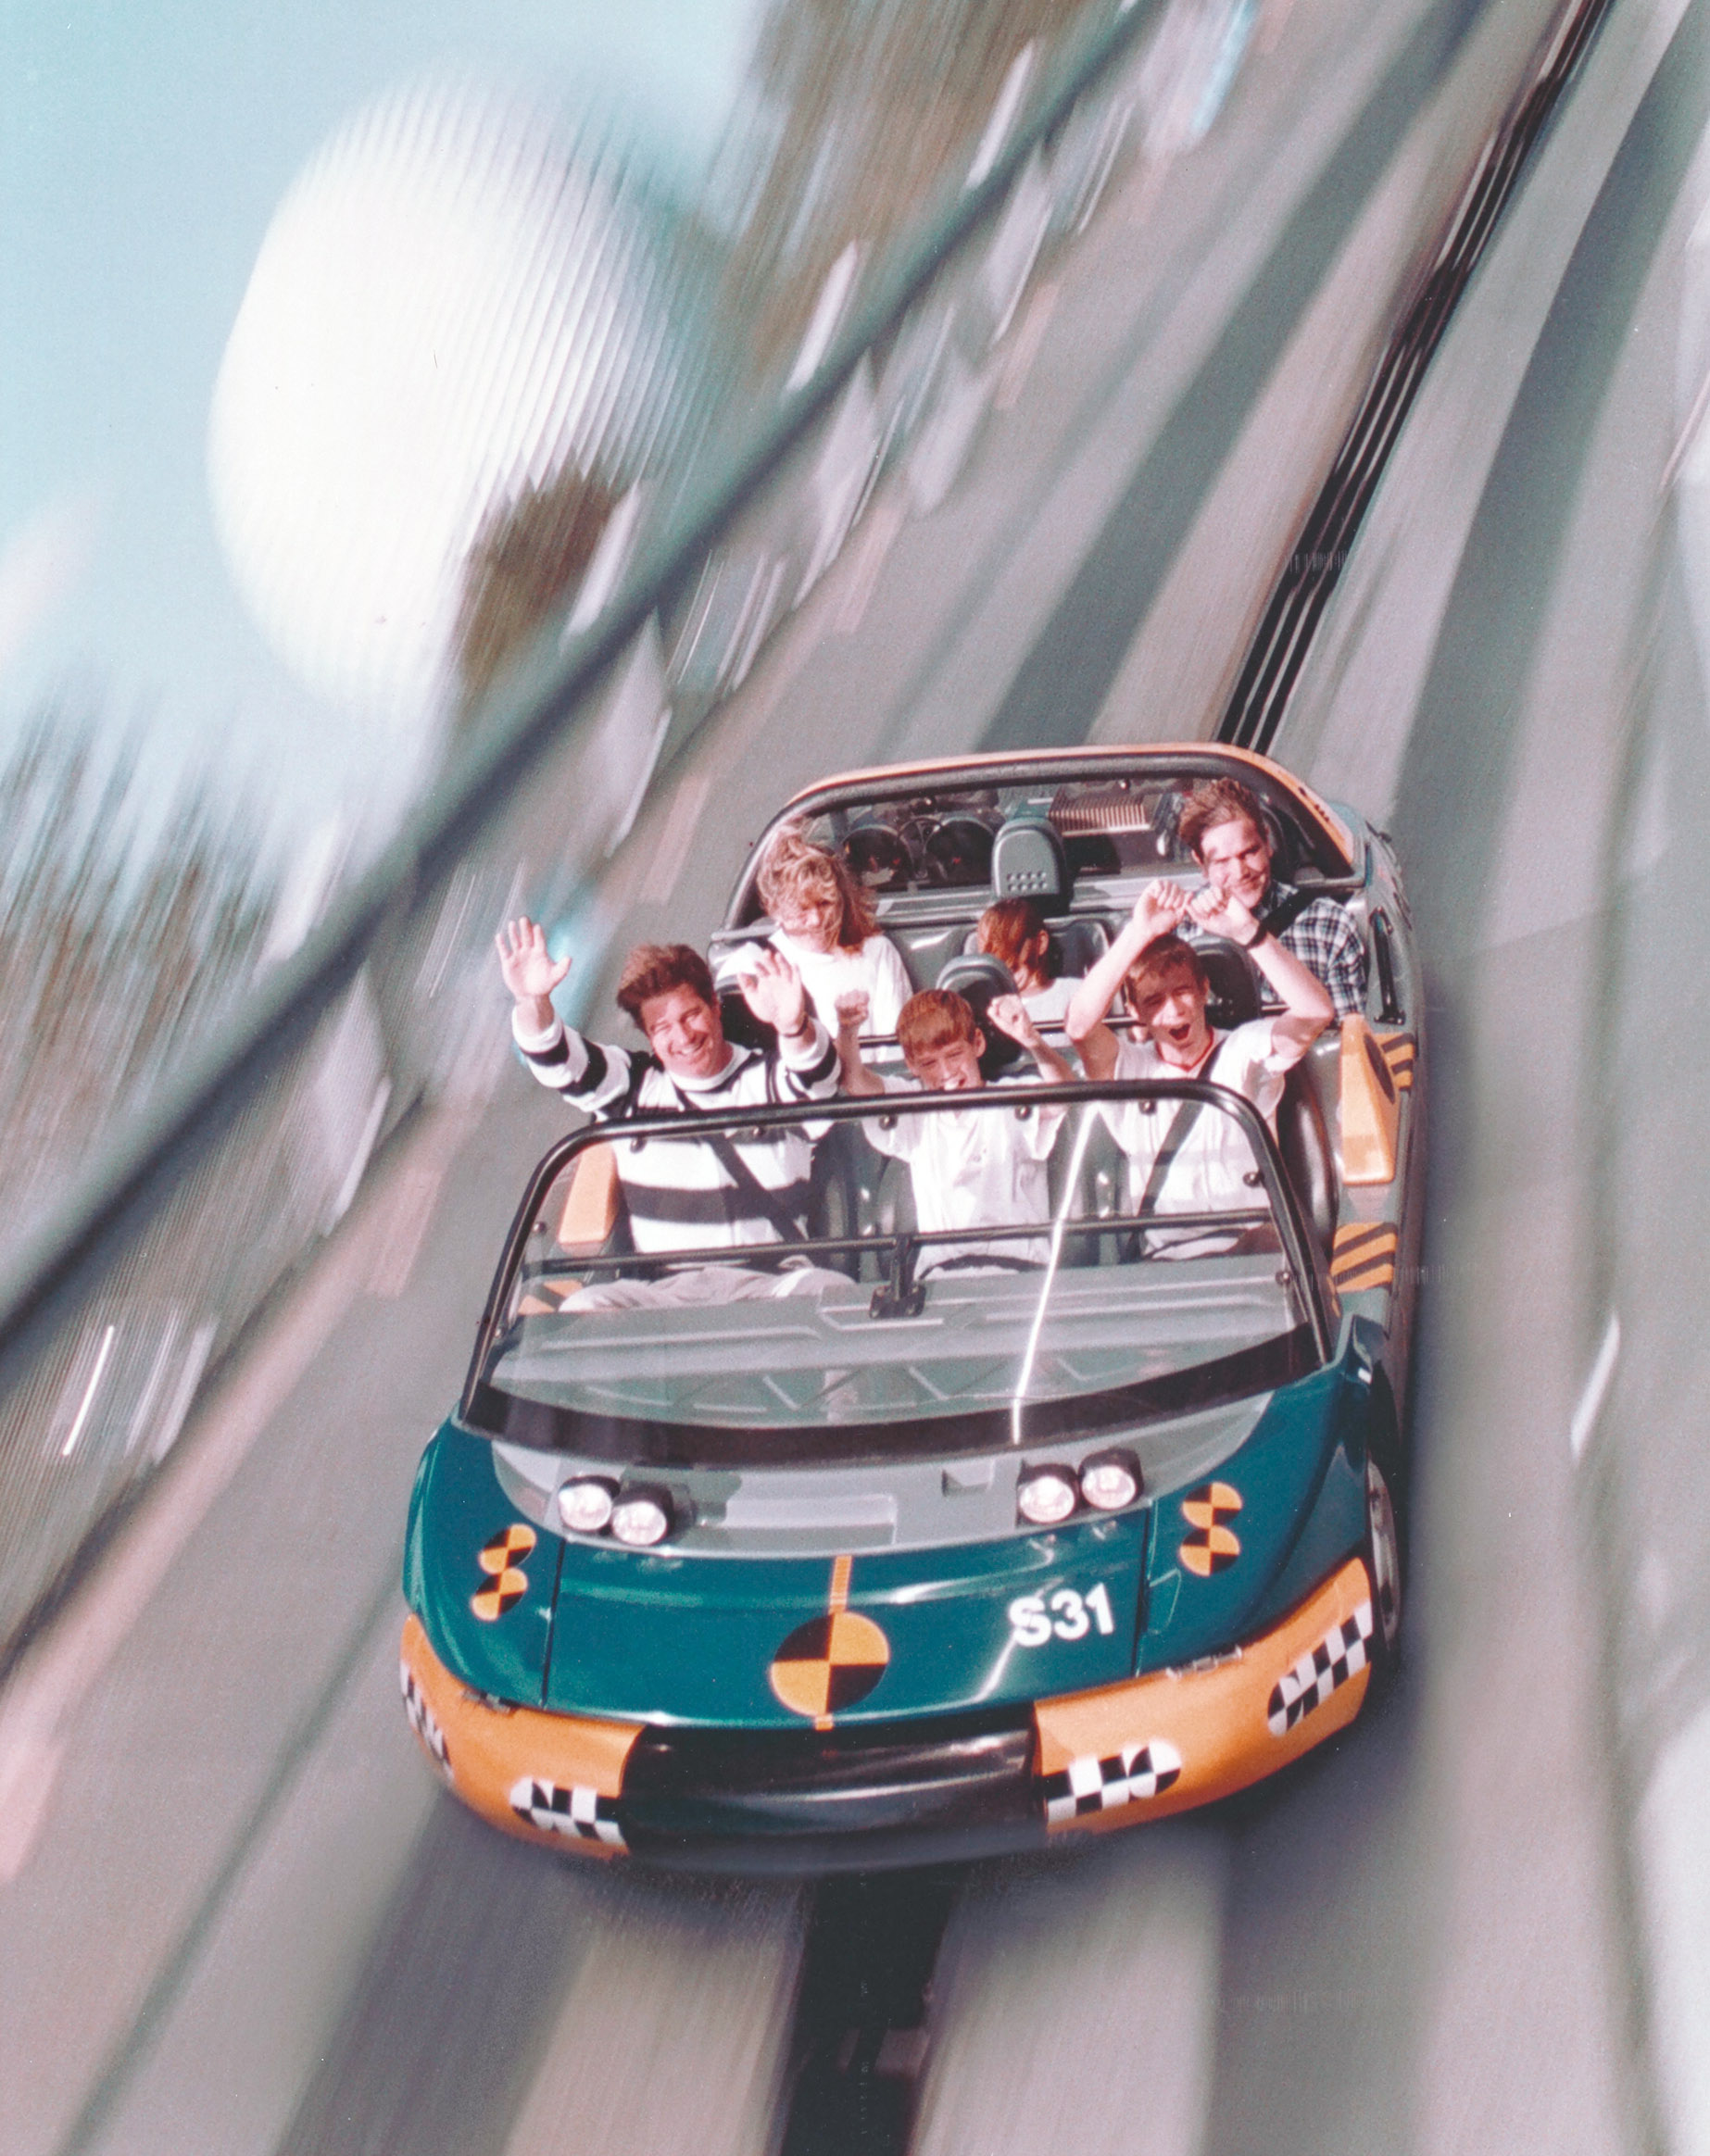 Vacation Alert Gm To Revamp Disney World Test Track Ride